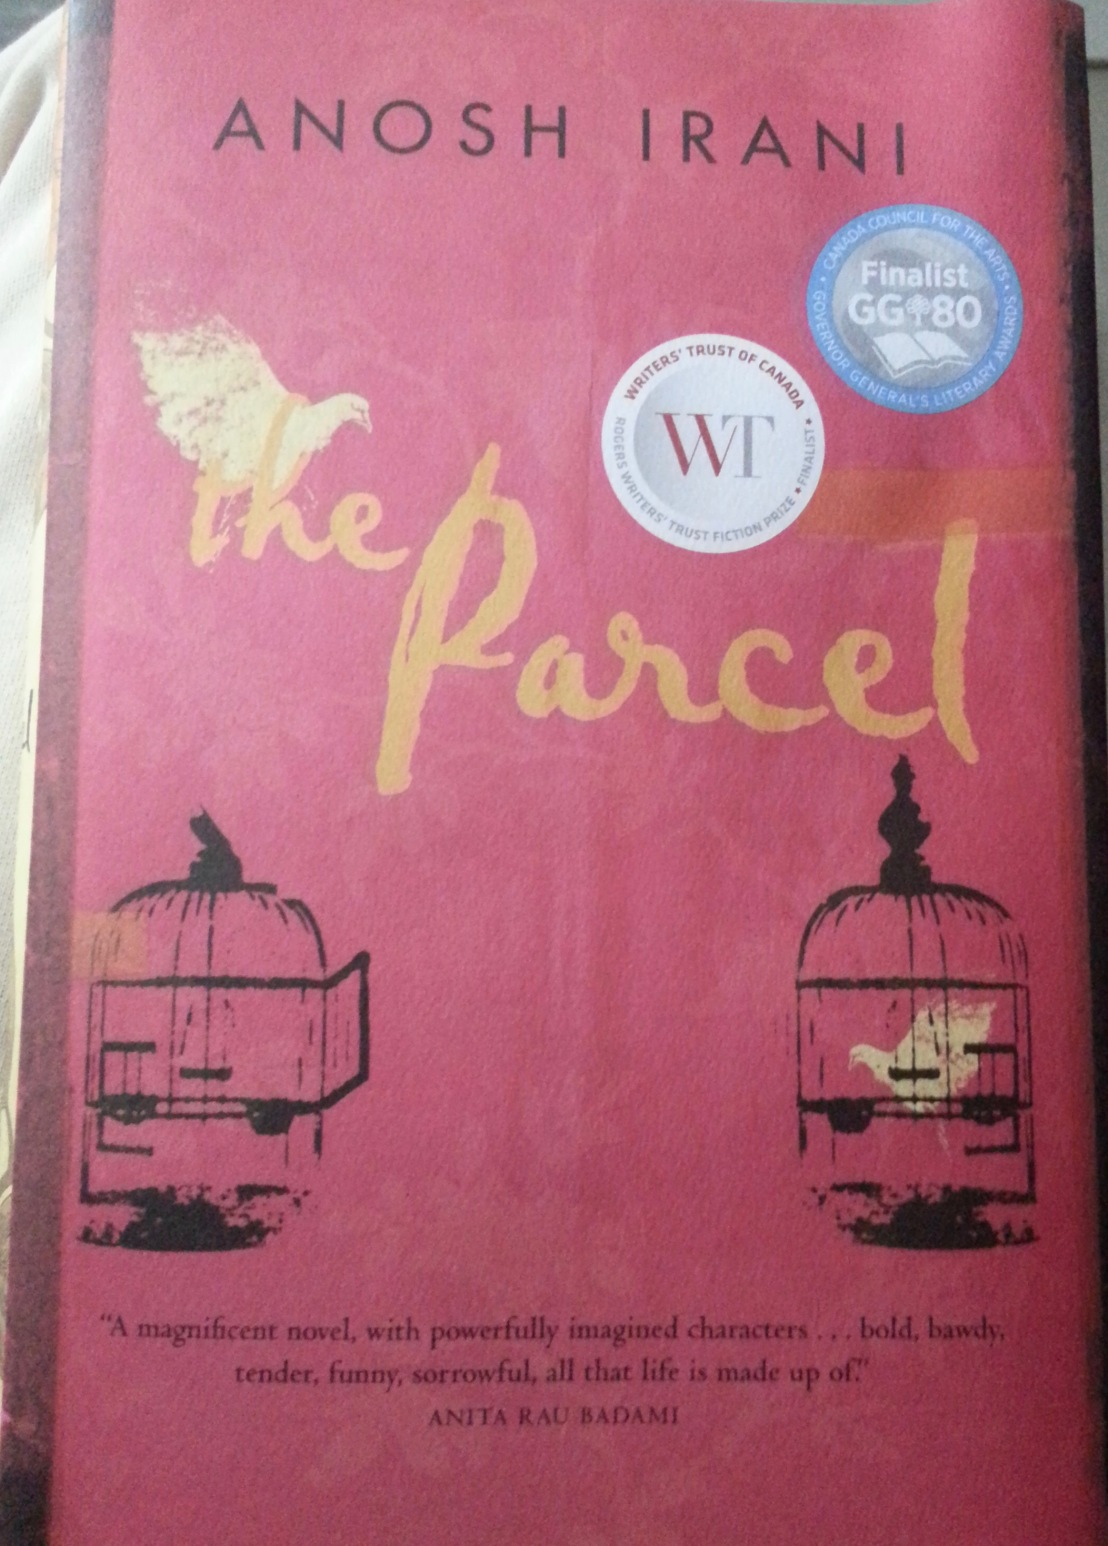 Anosh Irani's — The Parcel